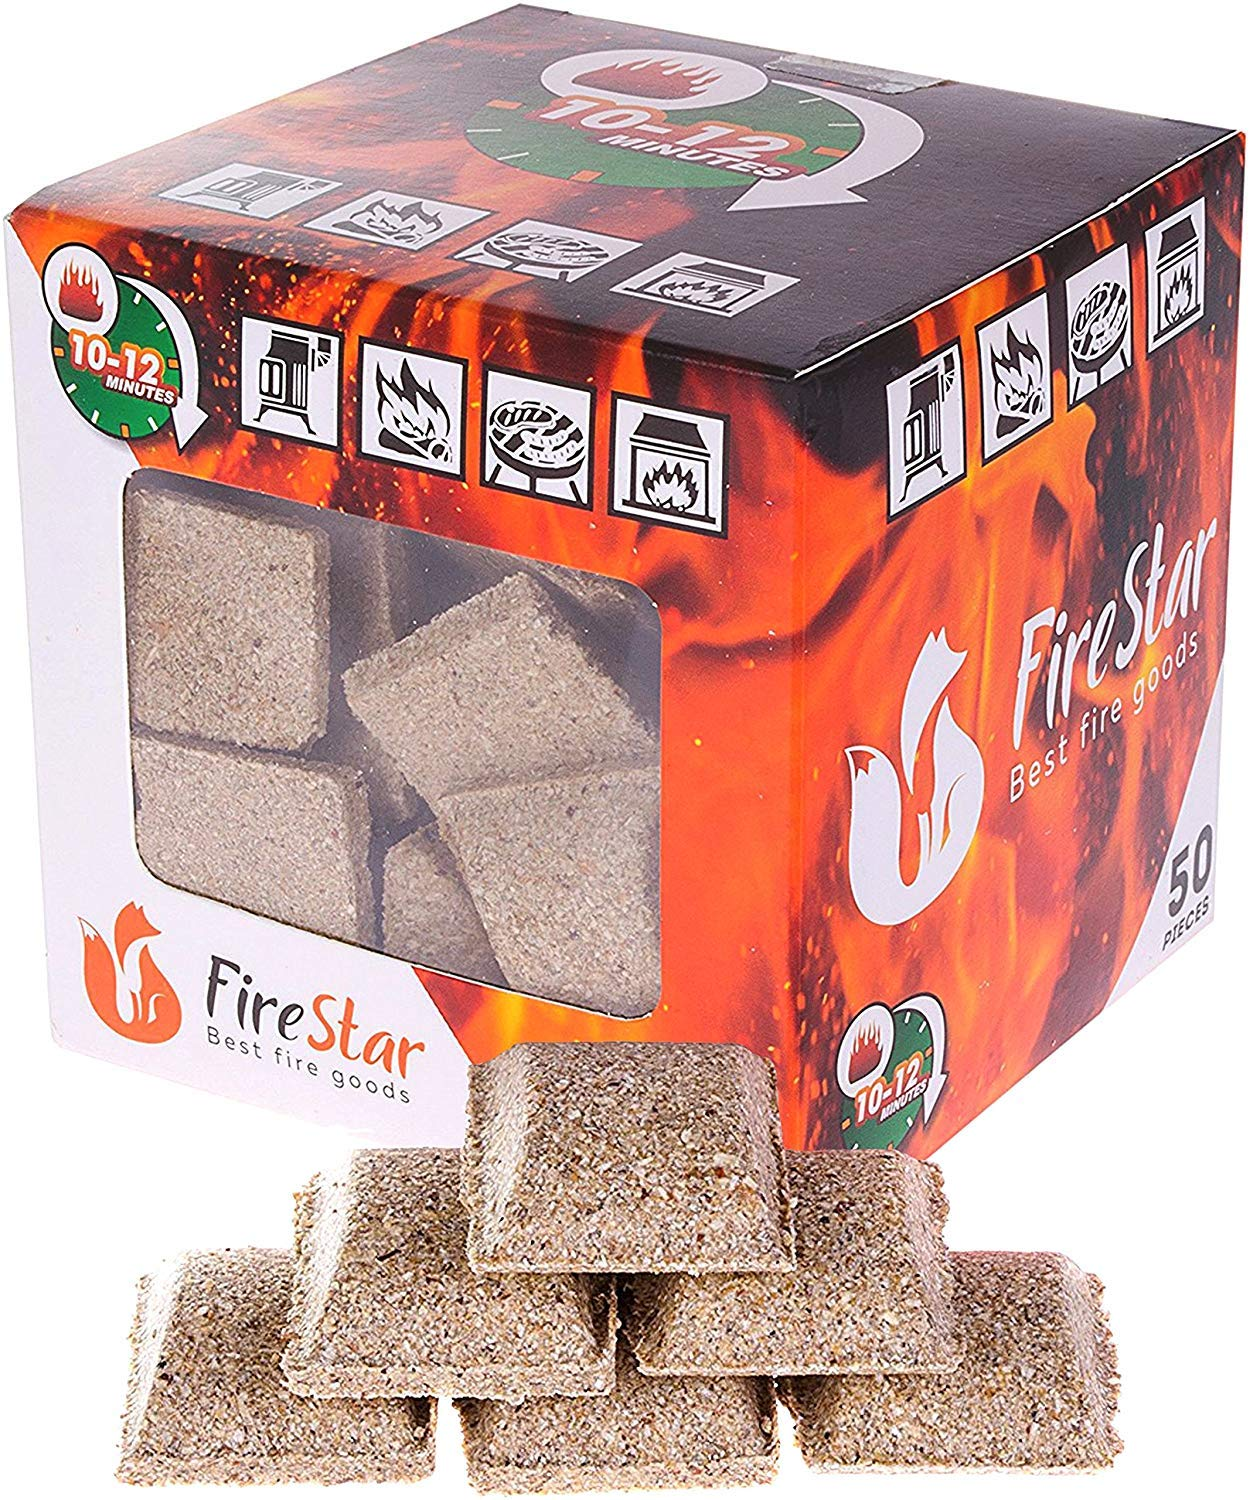 FireStar Squares Fire 50 pc in Pack-Grill Charcoal Starter Cubes Campfires and Camping Burns 12 min-Waterproof firestarters for Fireplace 0001